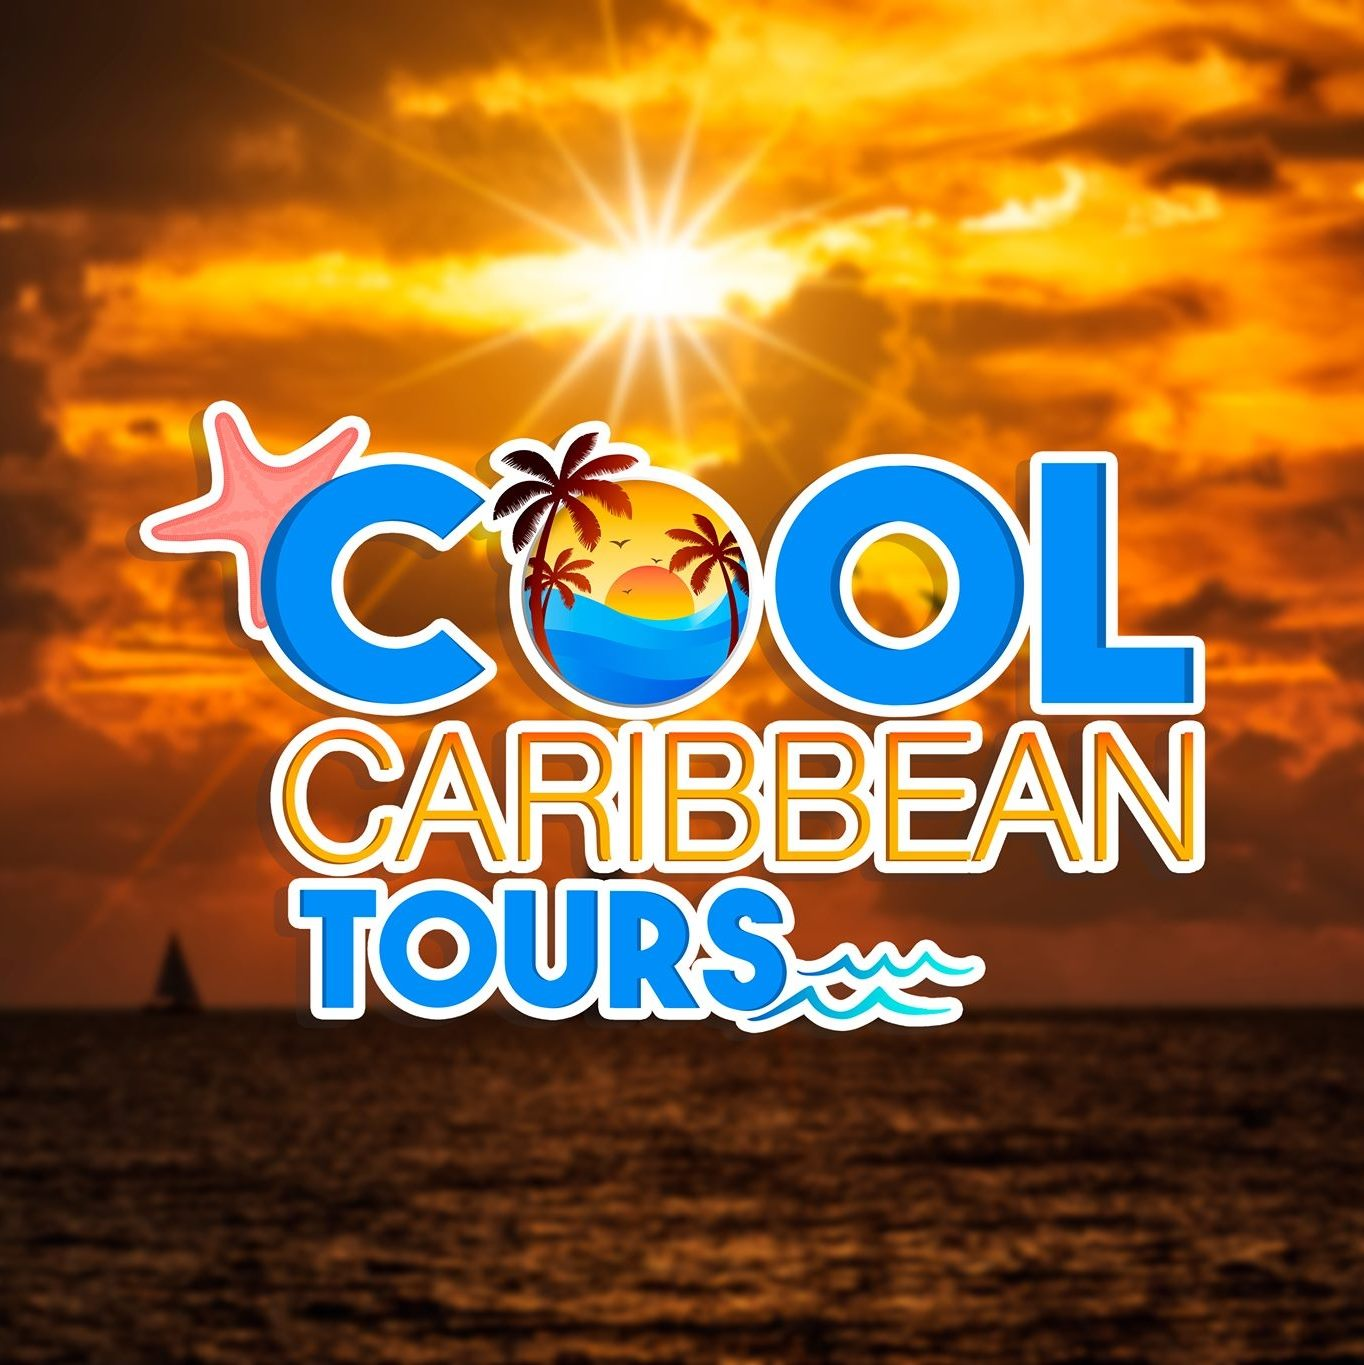 Cool Caribbean Tours